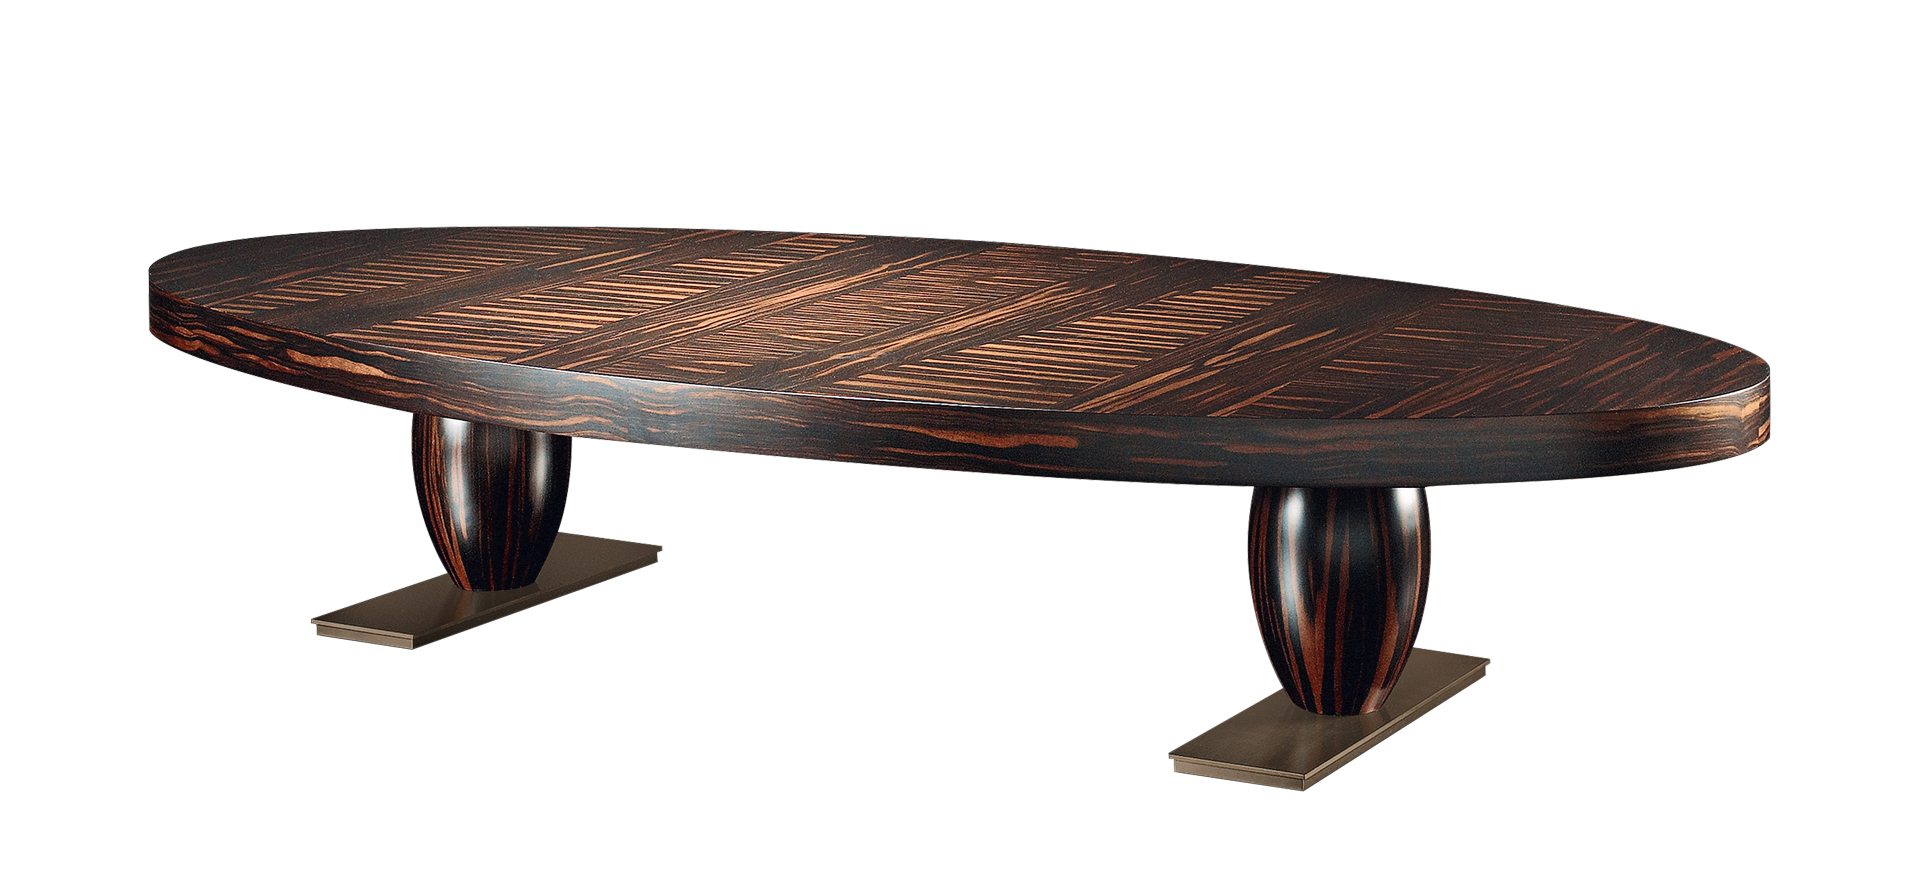 Bassano is an elliptical or rectangular bronze coffee table, covered in leather or inlaid top, from Promemoria's catalogue | Promemoria